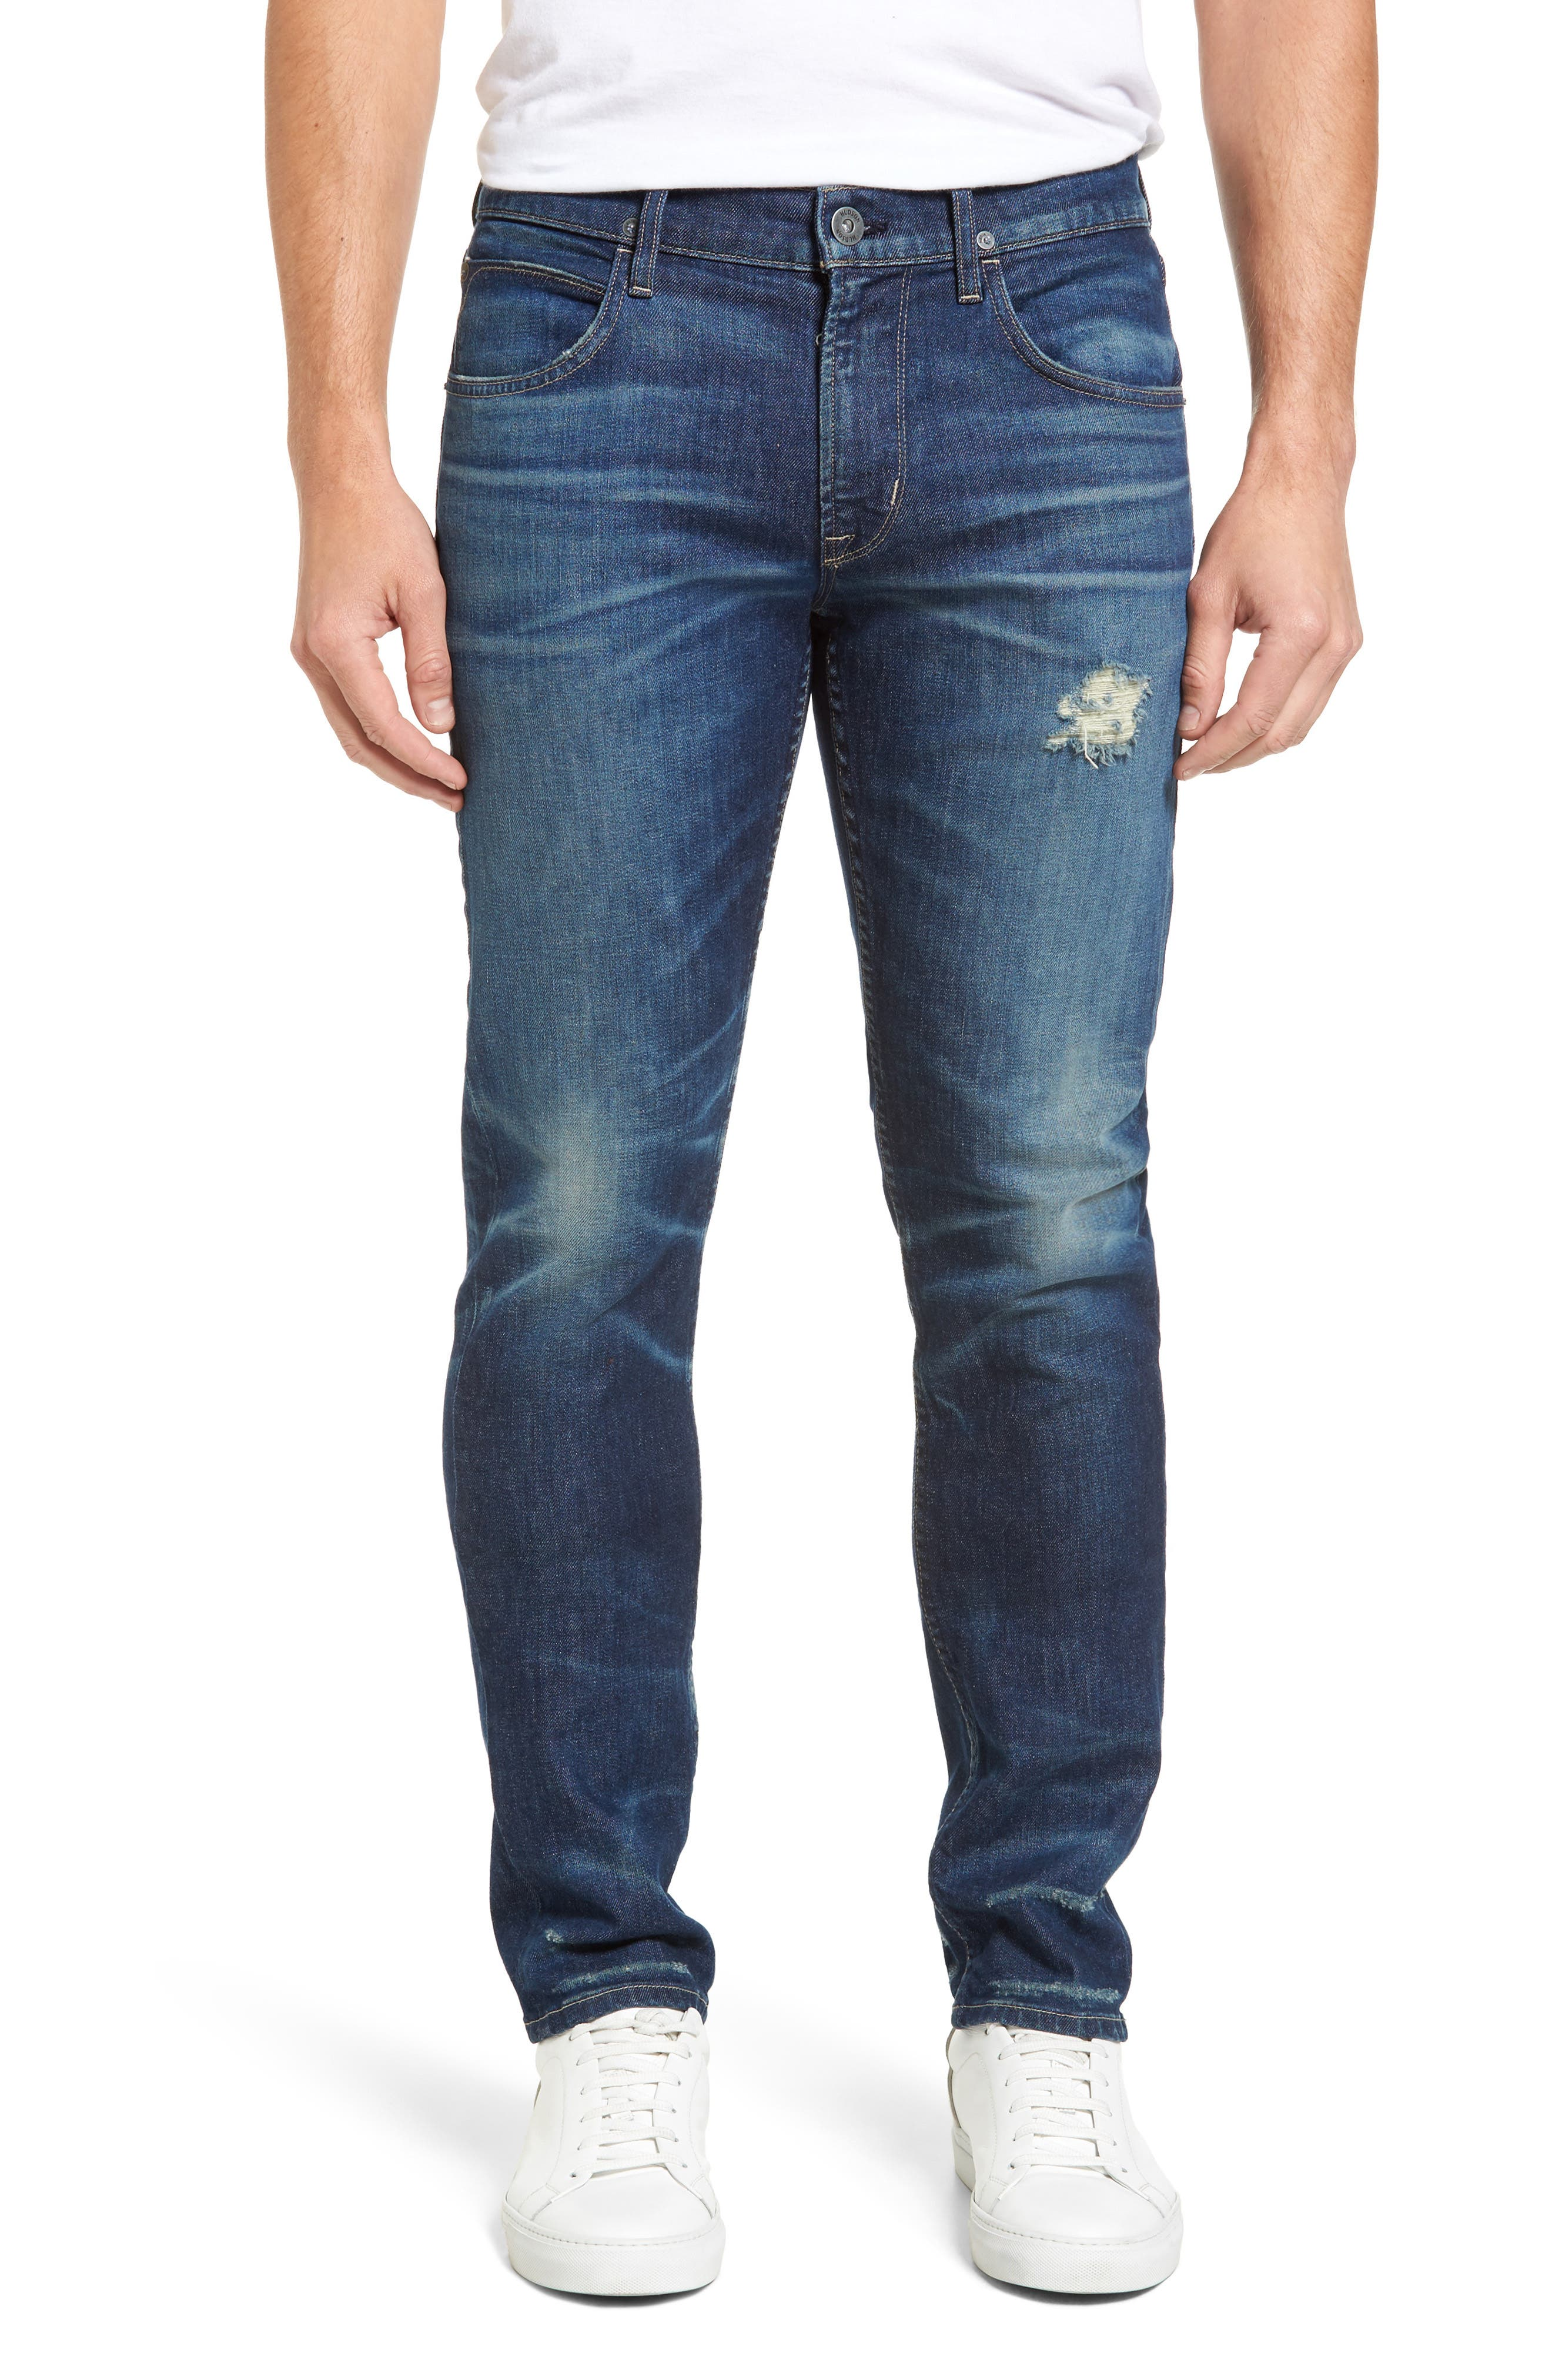 Blake Slim Fit Jeans,                             Main thumbnail 1, color,                             Operation